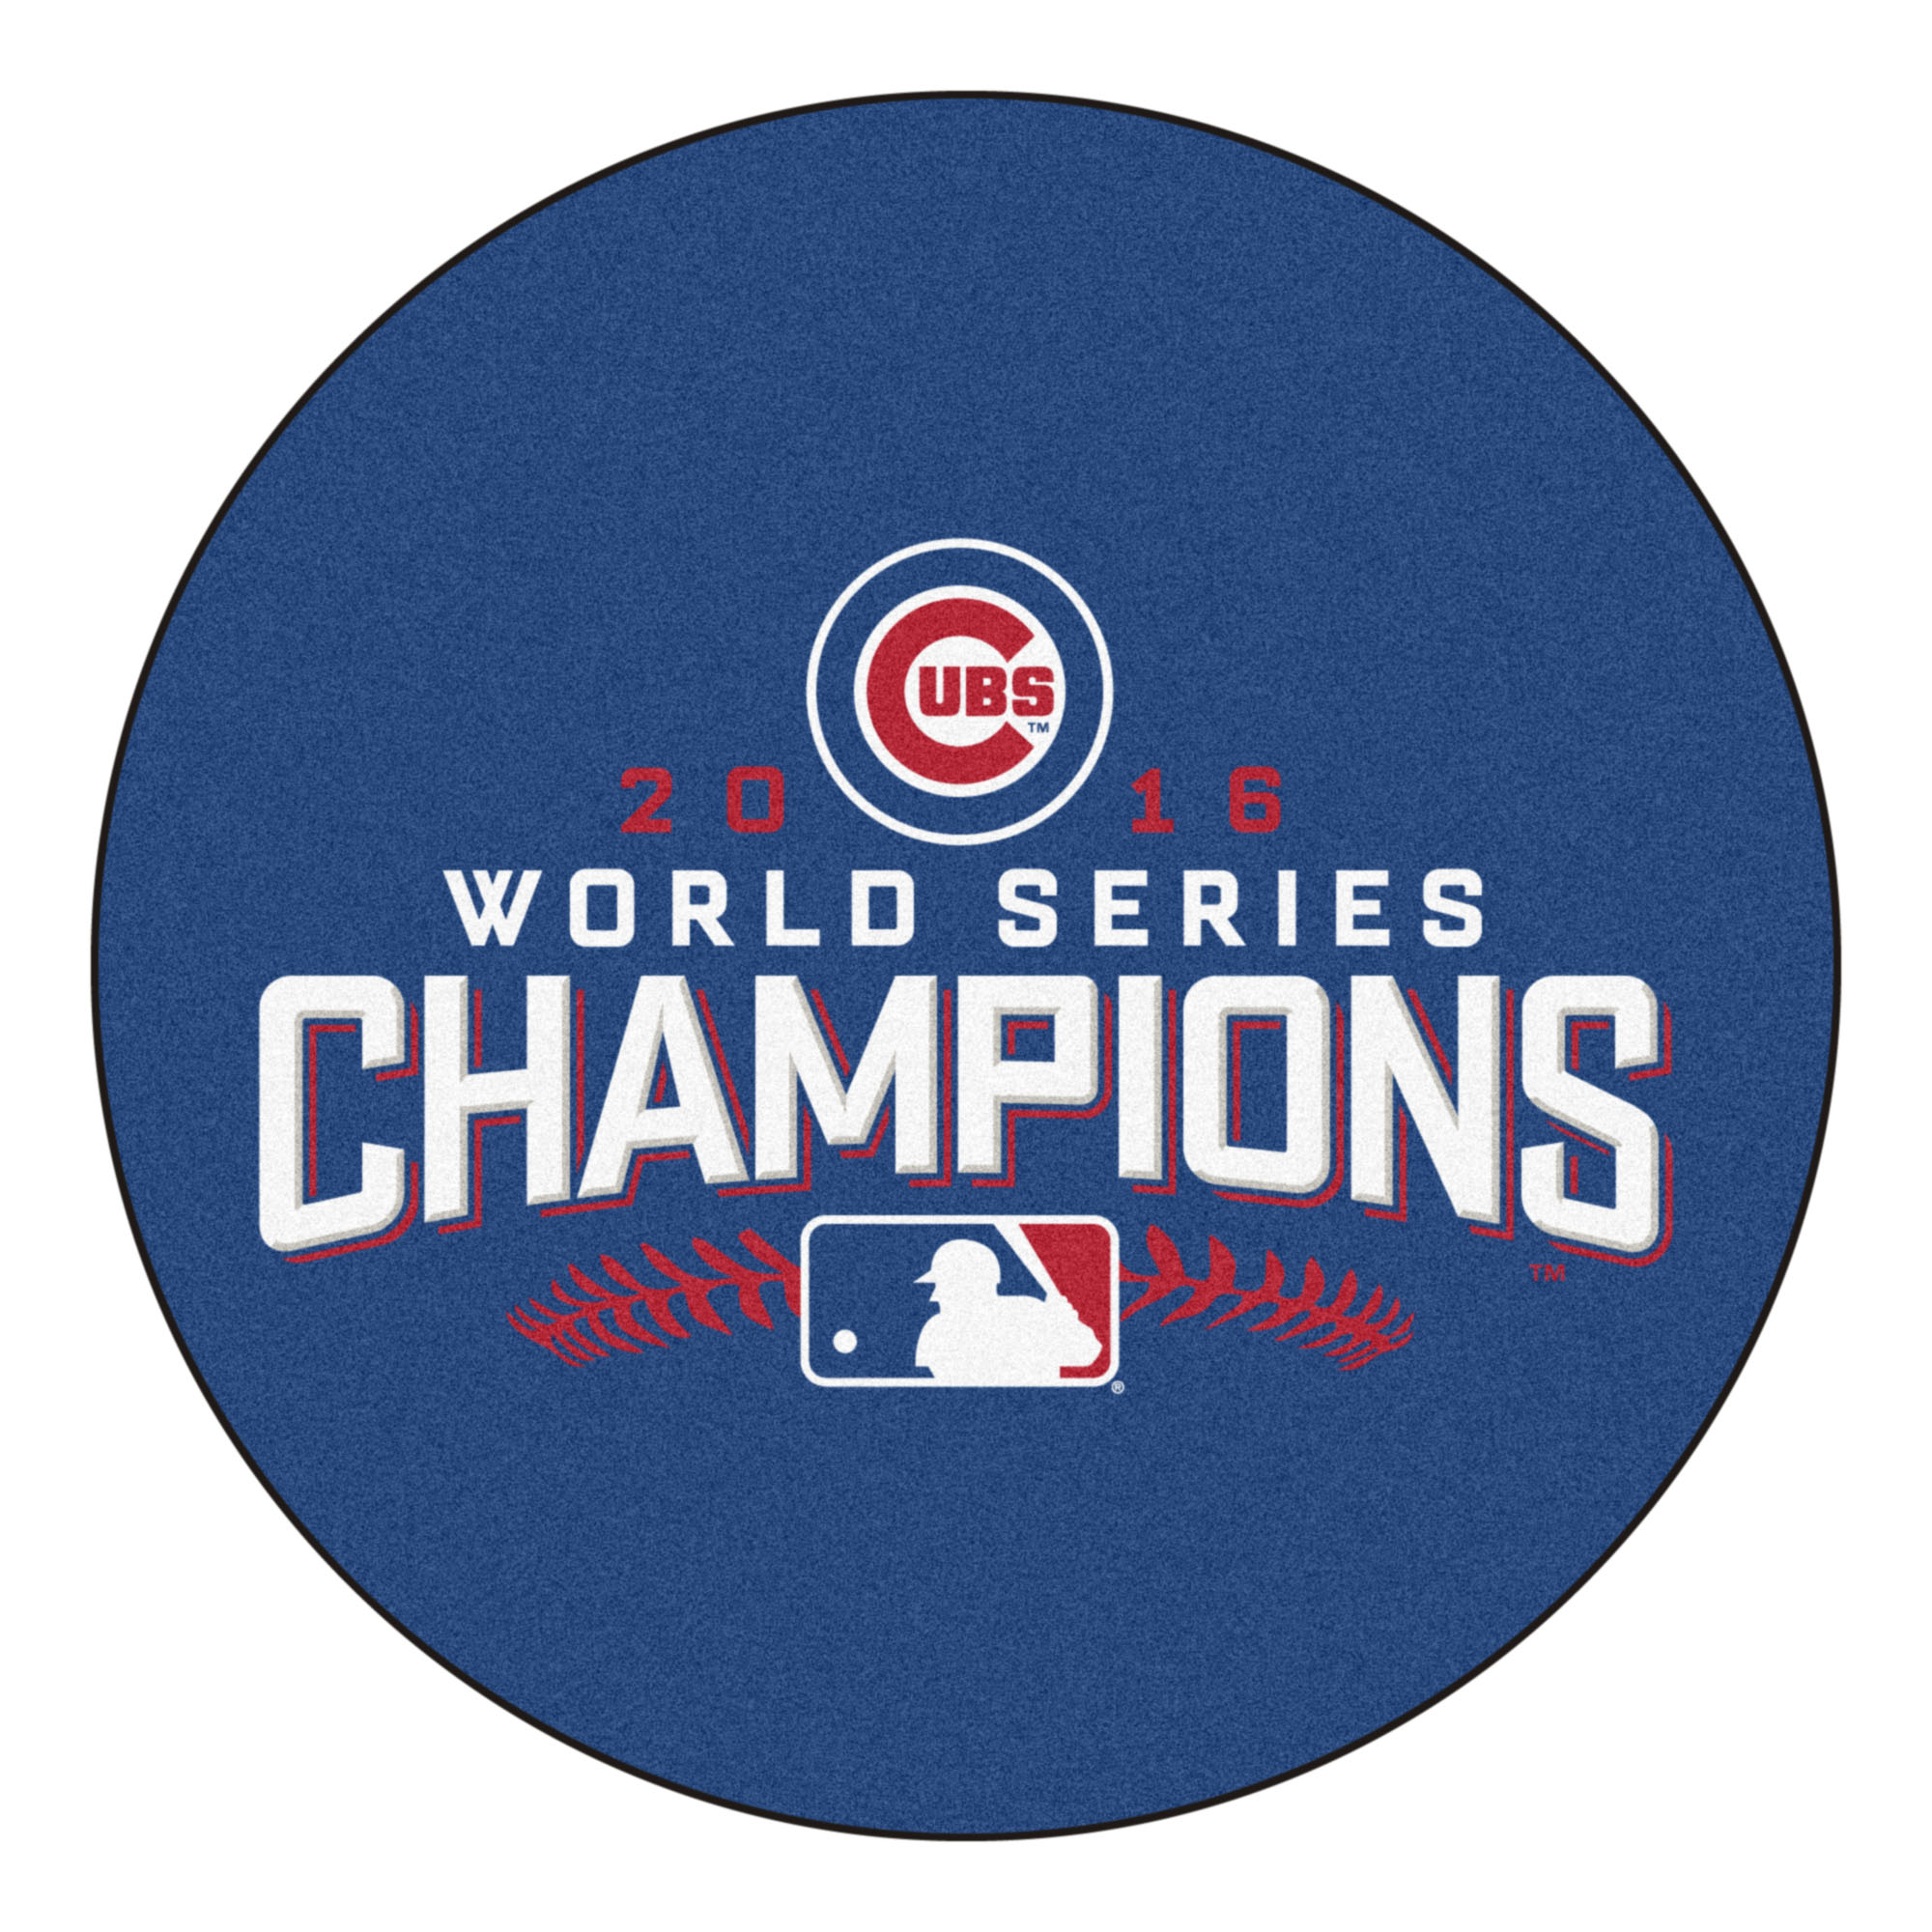 chicago cubs world series champs round area rug